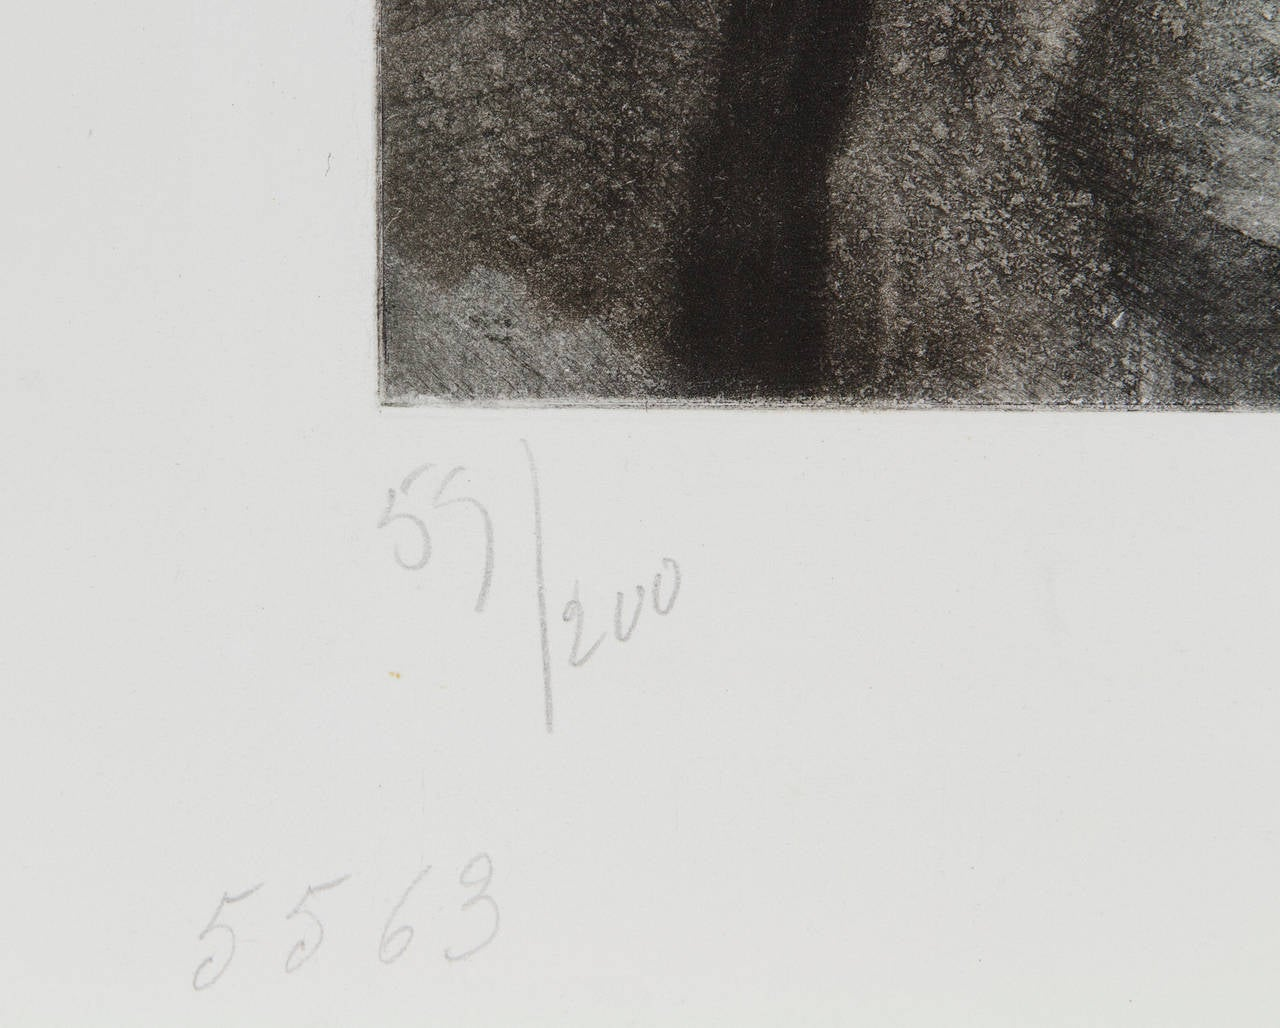 etching and aquatint in colors image: 14 3/4 x 17 3/4 in. sheet: 19 3/4 x 24 5/8 in. Signed in pencil lower right,